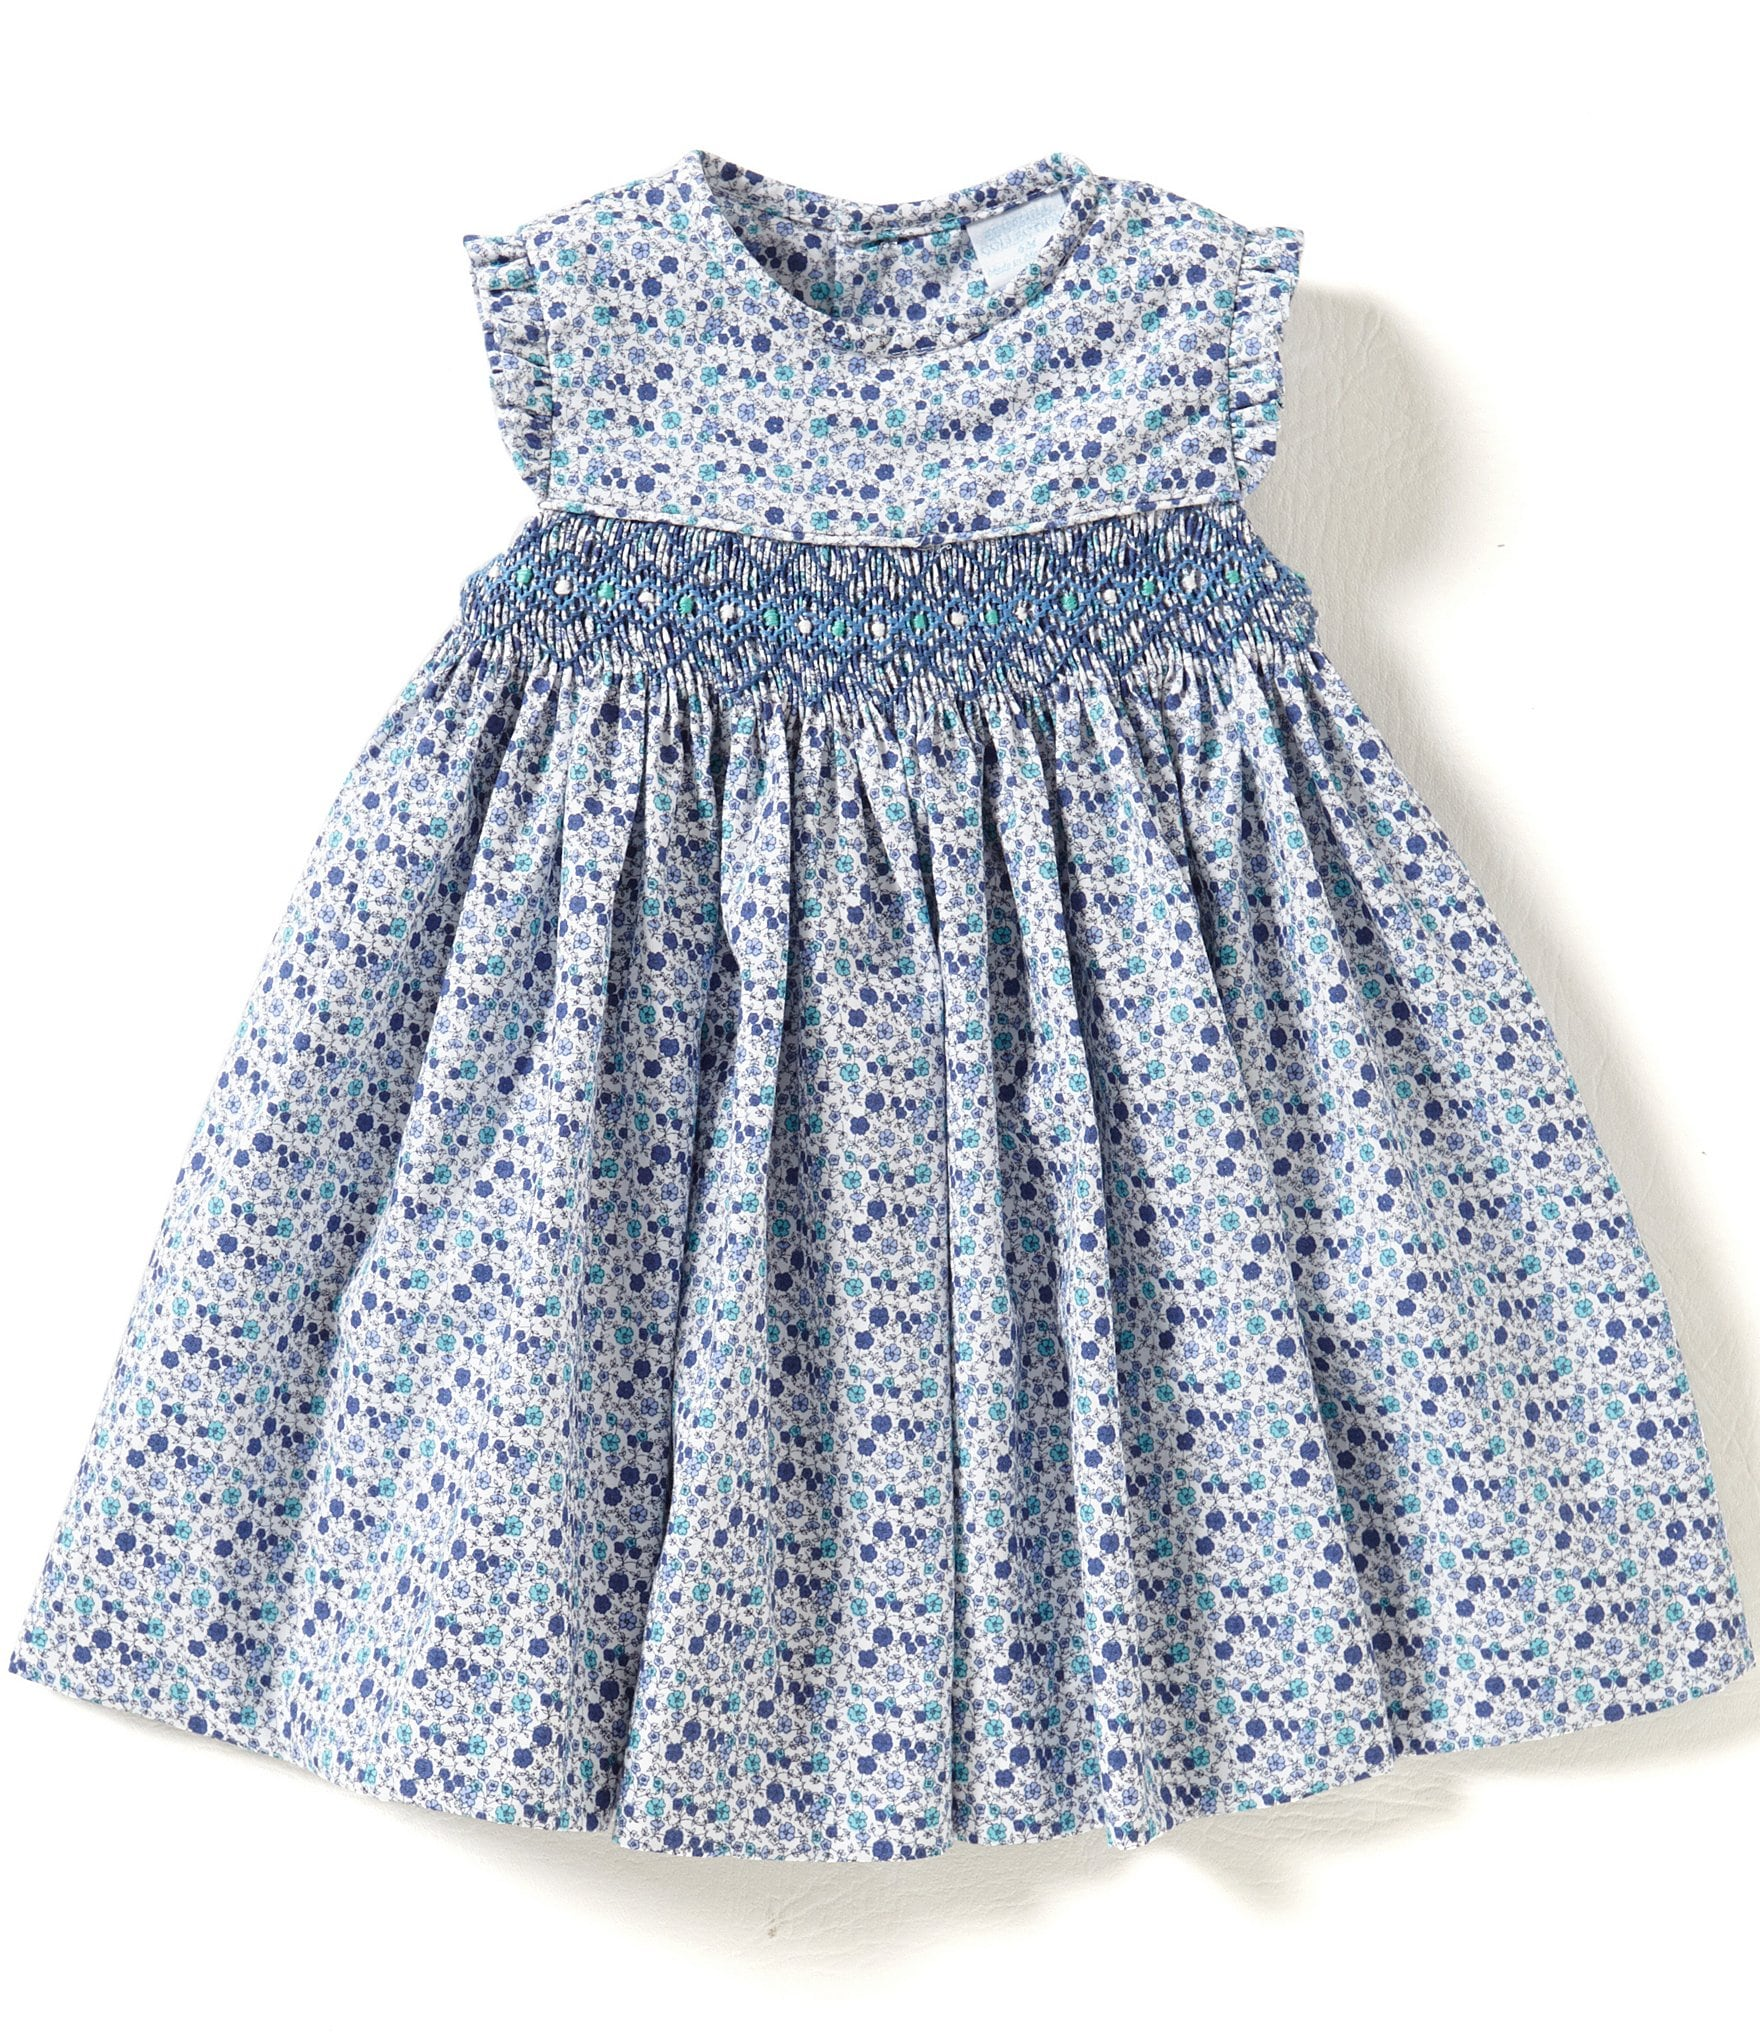 Baby Girl ( Months) Girls' Dresses at Macy's come in a variety of styles and sizes. Shop Baby Girl ( Months) Girls' Dresses at Macy's and find the latest styles for your little one today. Macy's Presents: The Edit- A curated mix of fashion and inspiration Check It Out.